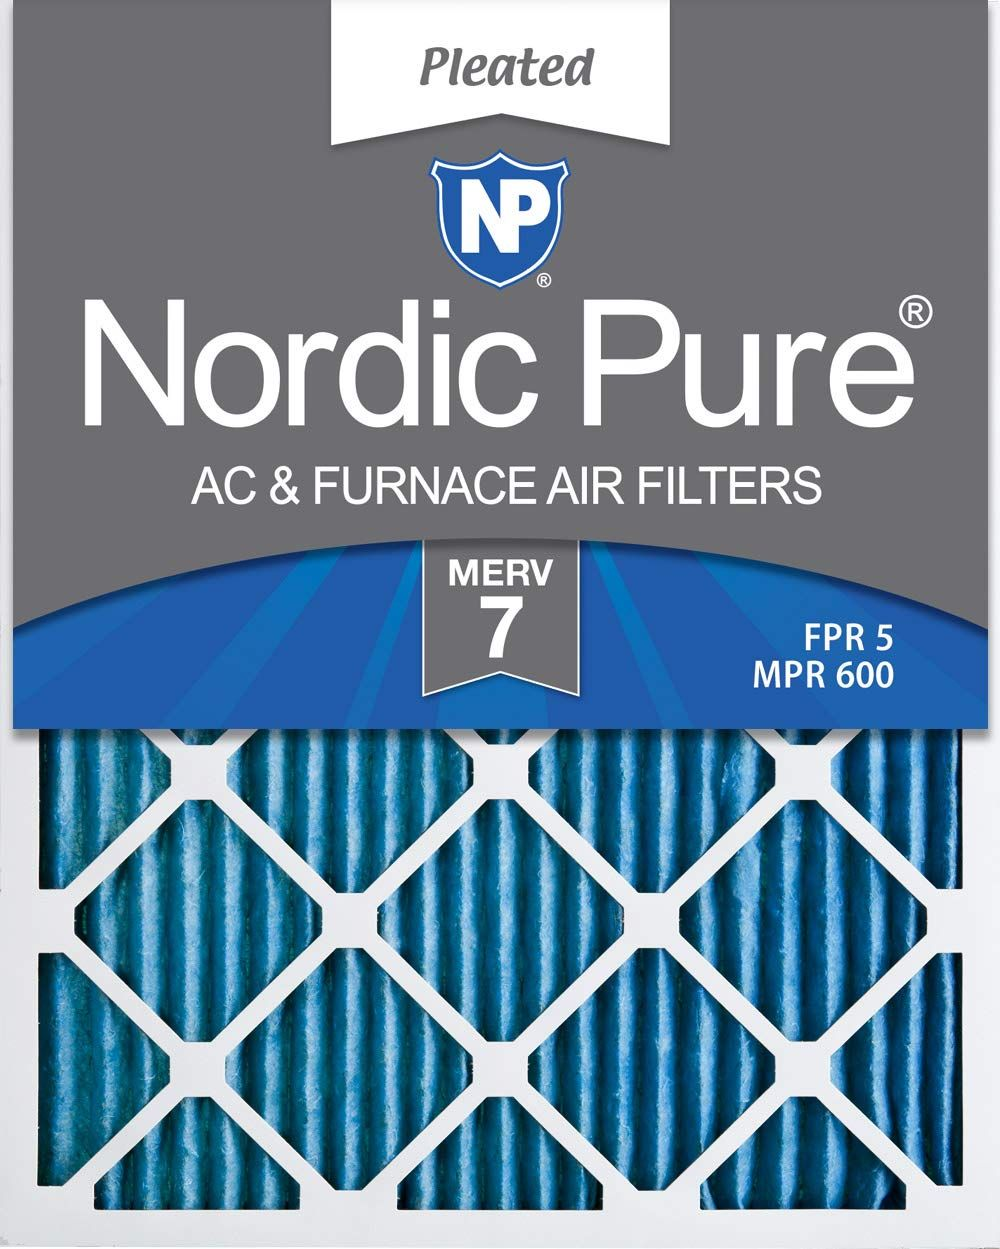 Nordic Pure 12x24x1 MERV 7 Pleated AC Furnace Air Filters